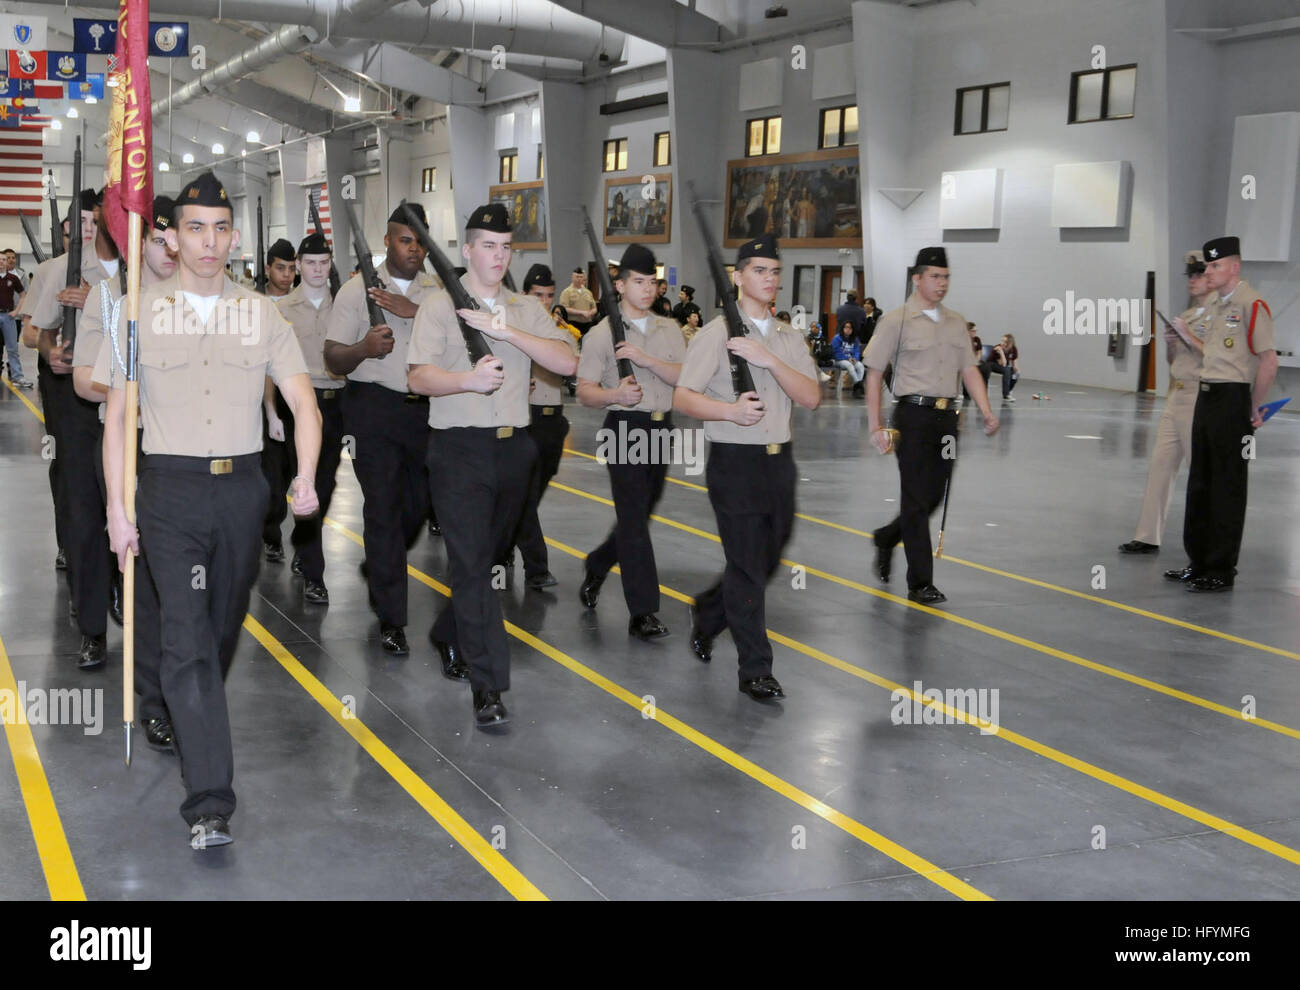 110312-N-IK959-754 NAVAL STATION GREAT LAKES, Ill. (March 12, 2011) The Zion-Benton (Ill.) High School Navy Junior - Stock Image